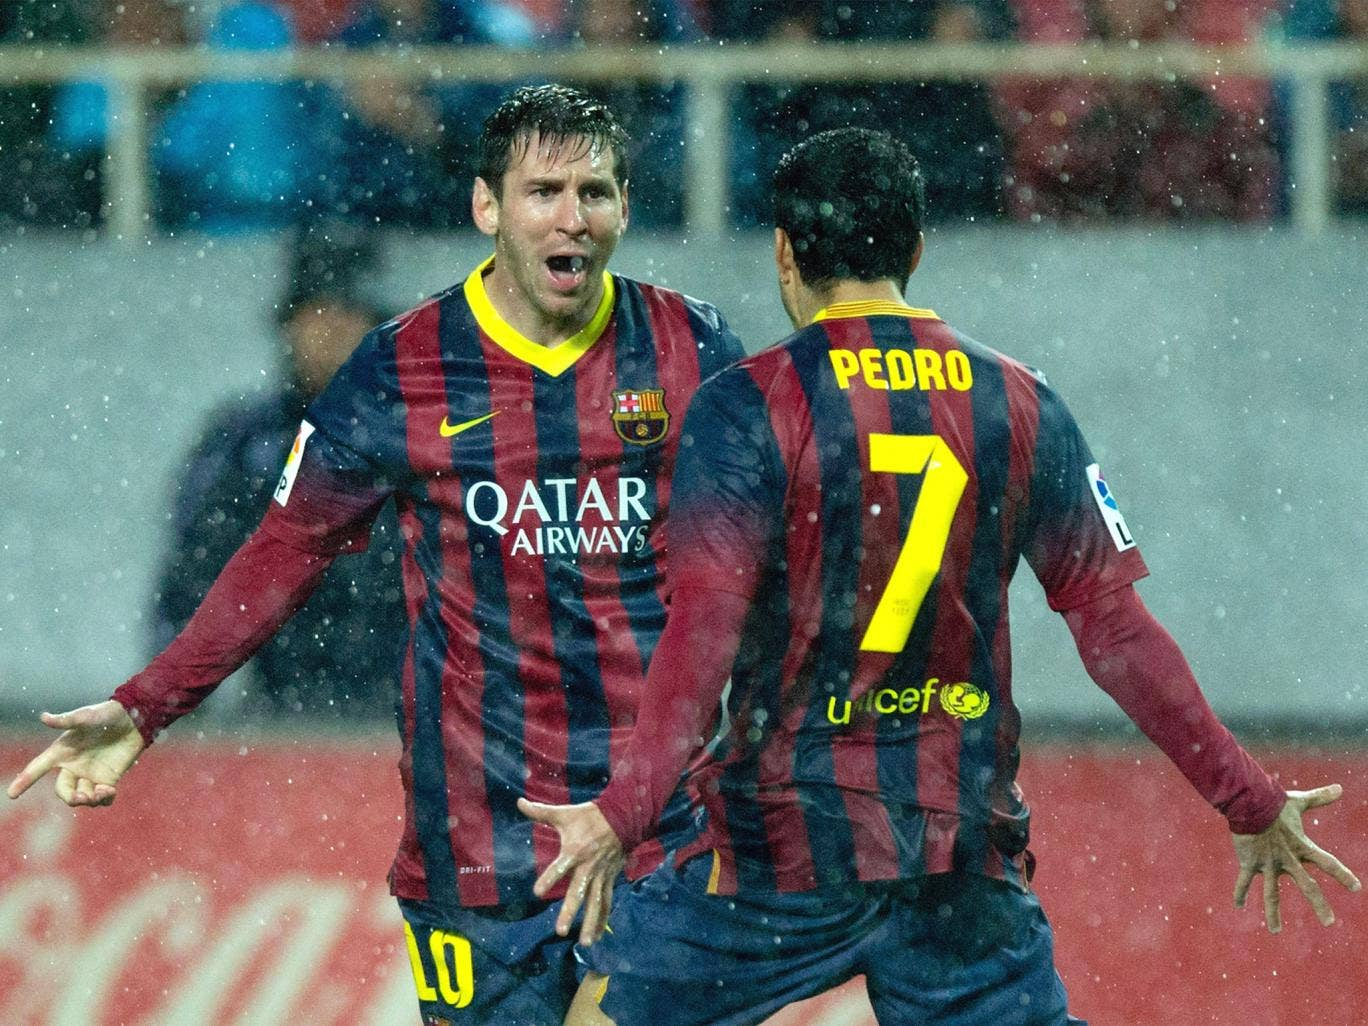 Lionel Messi returned to goalscoring form with two strikes in Barcelona's 4-1 win on Sunday